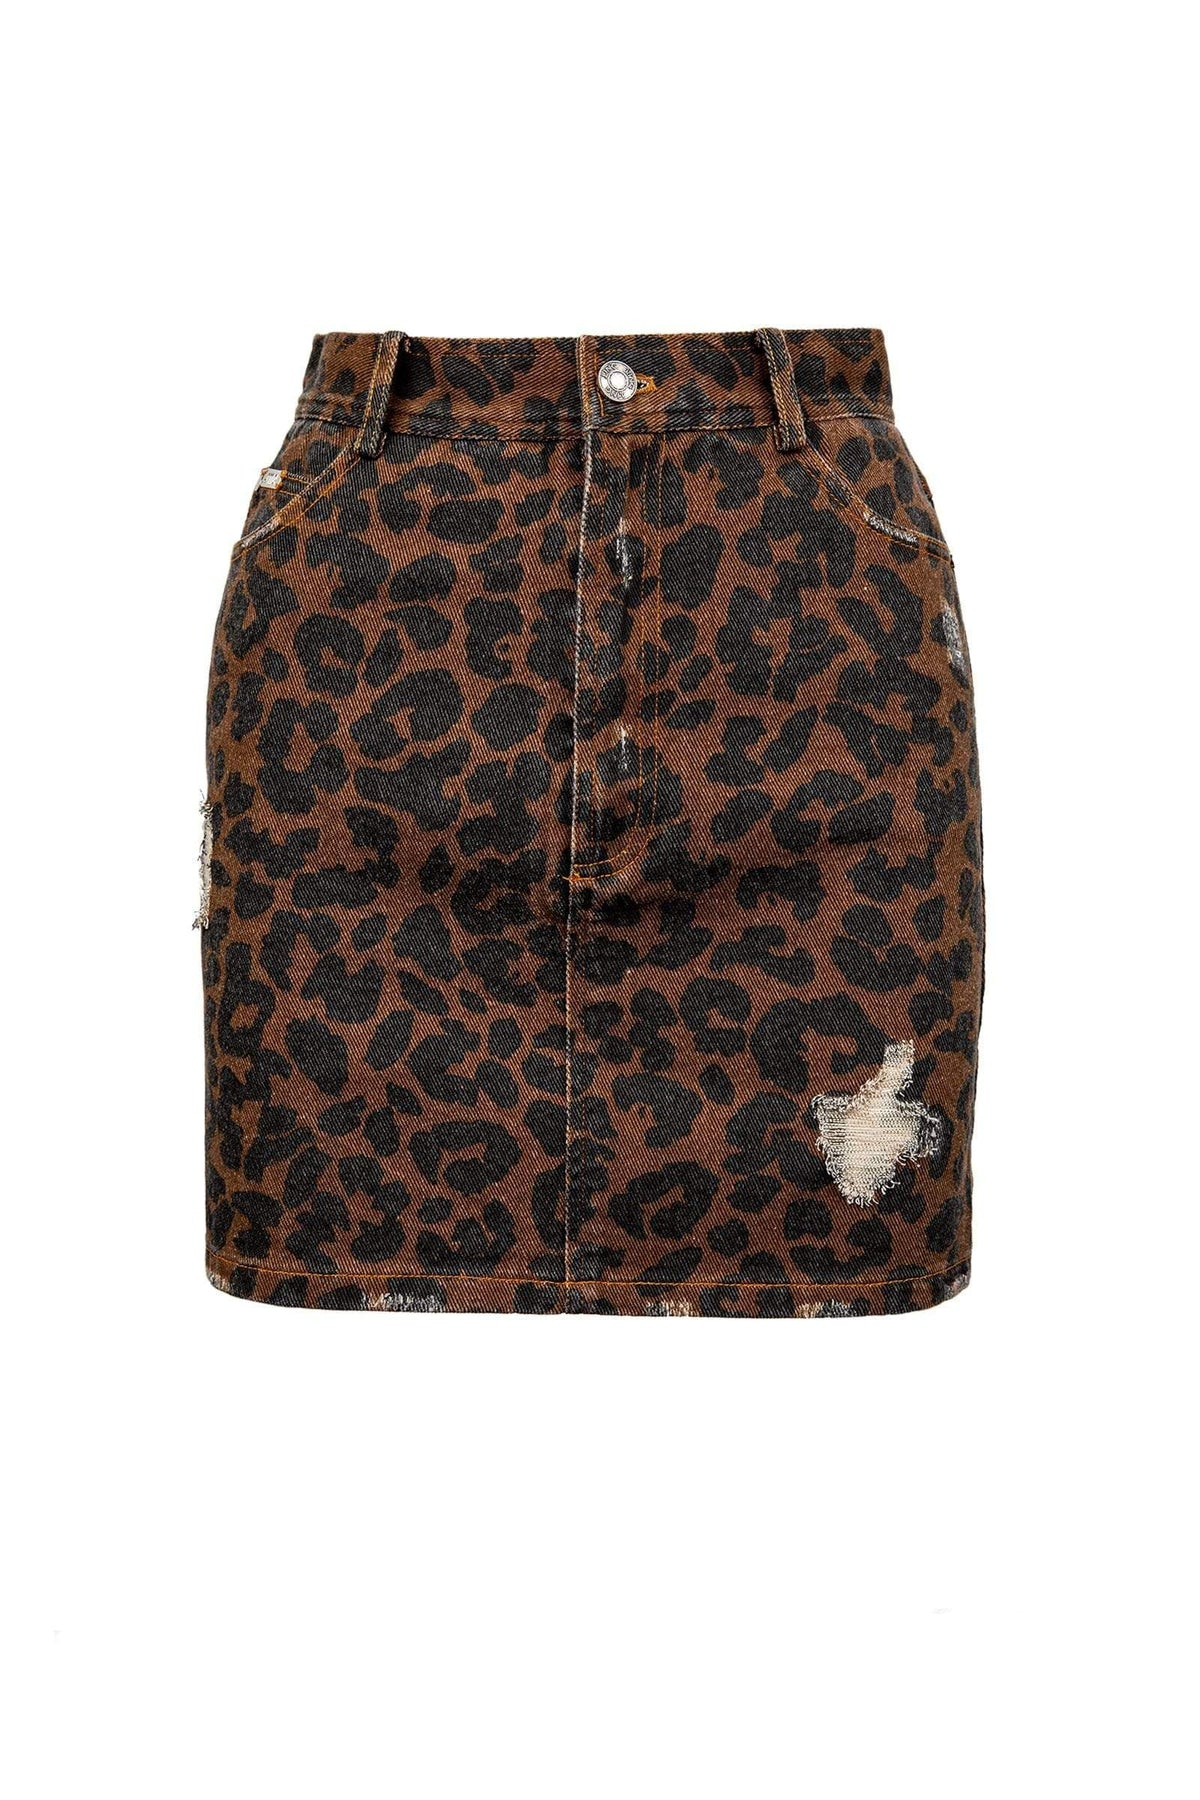 Pounce Leopard Mini Skirt